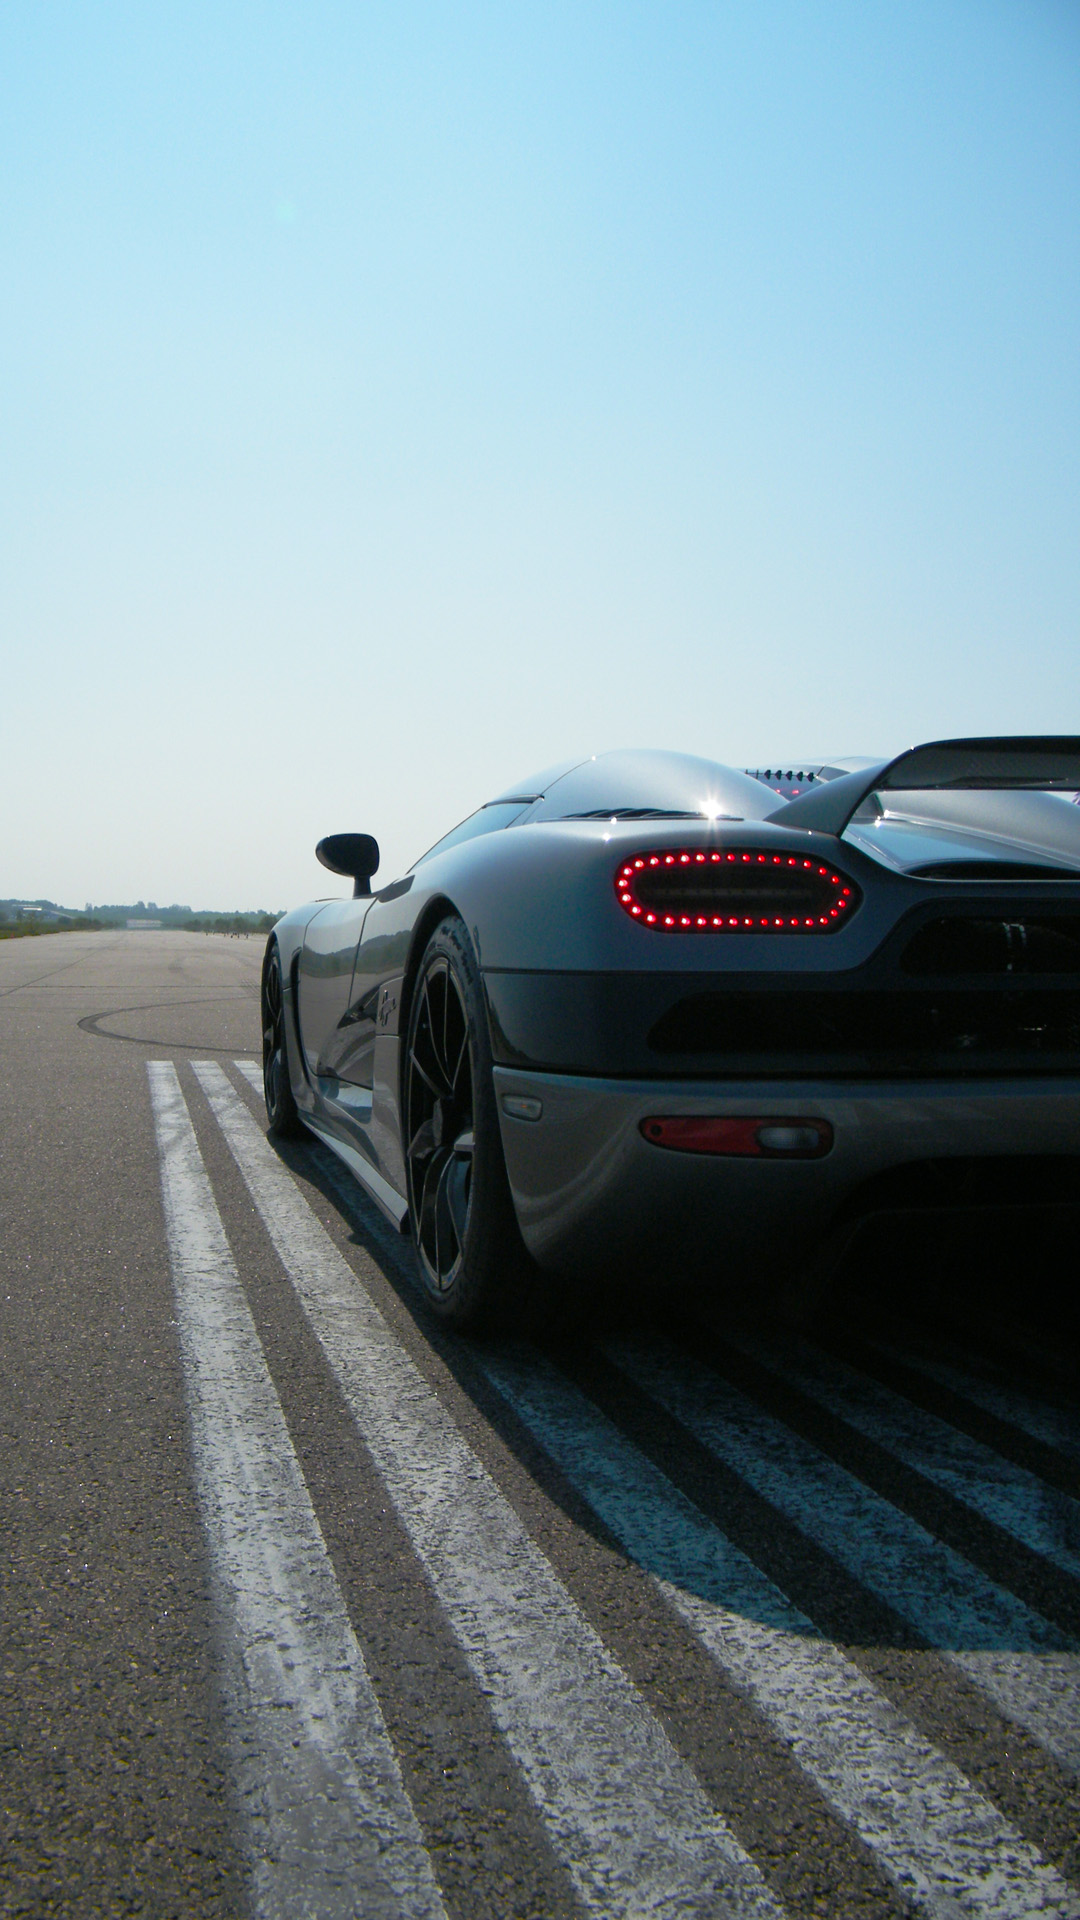 Bugatti Cars Wallpapers Hd Free Download Black Koenigsegg Agera R Best Htc One Wallpapers